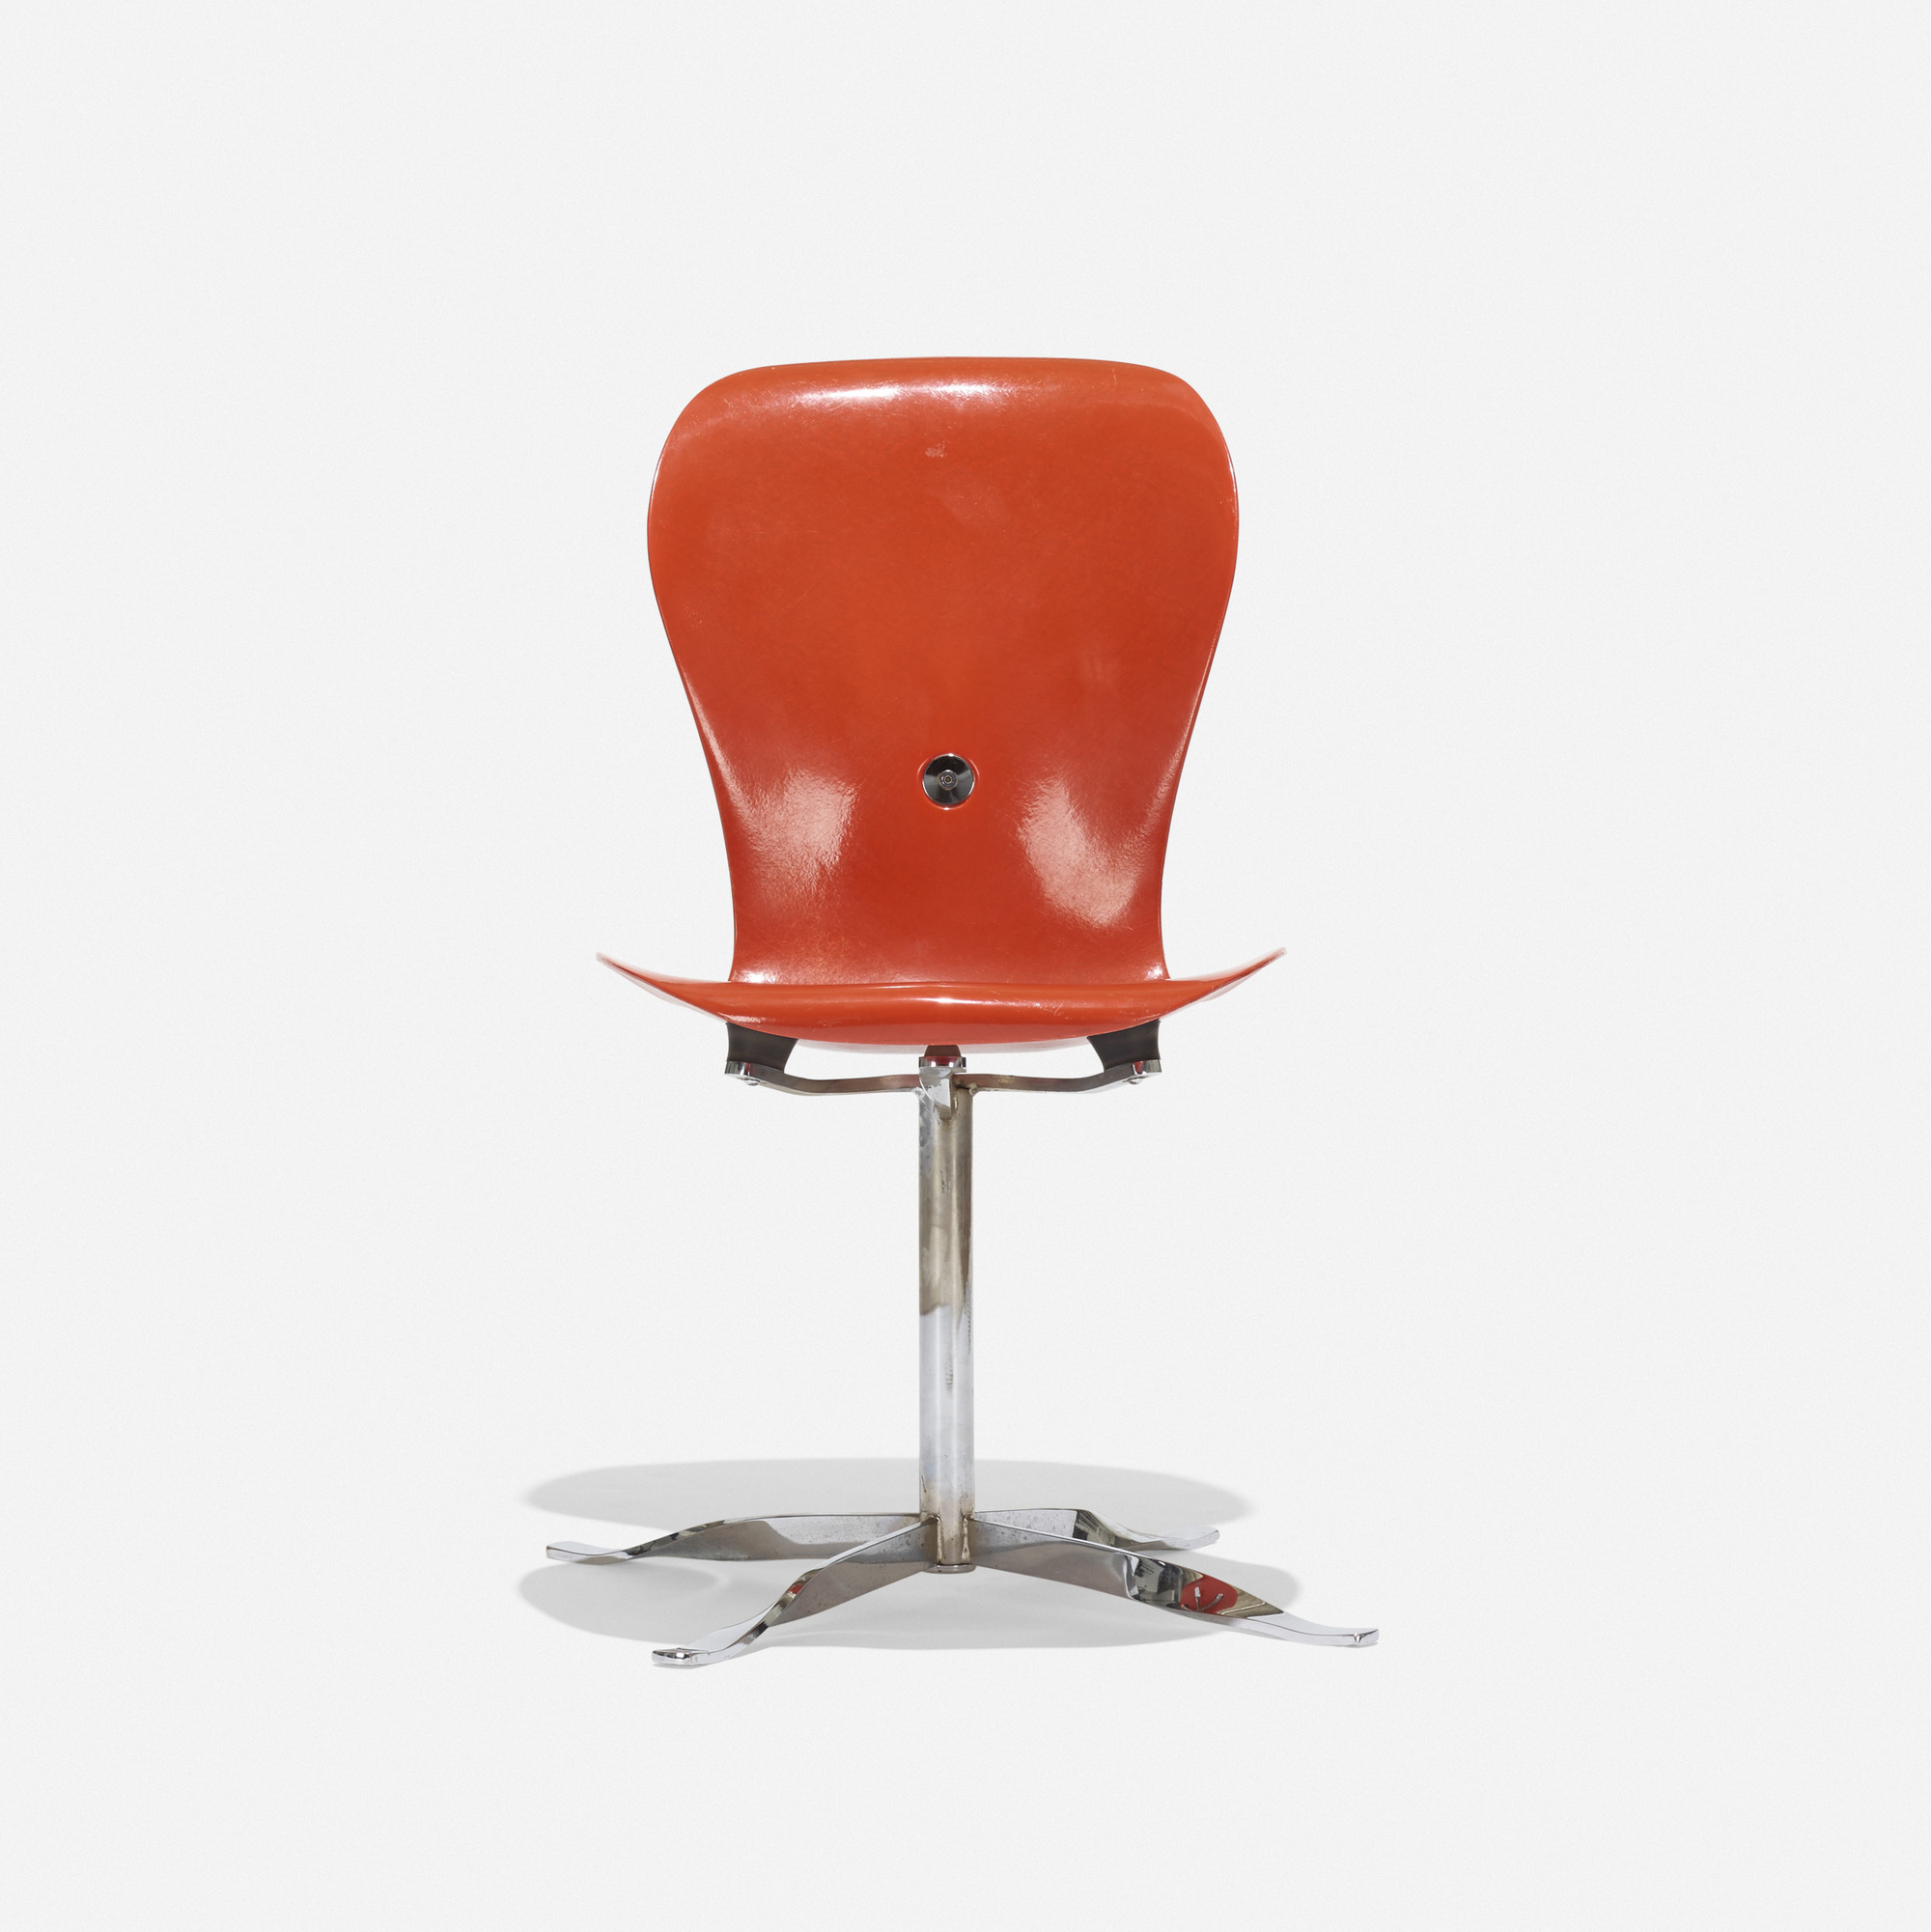 221: Gideon Kramer / Ion chair (2 of 5)